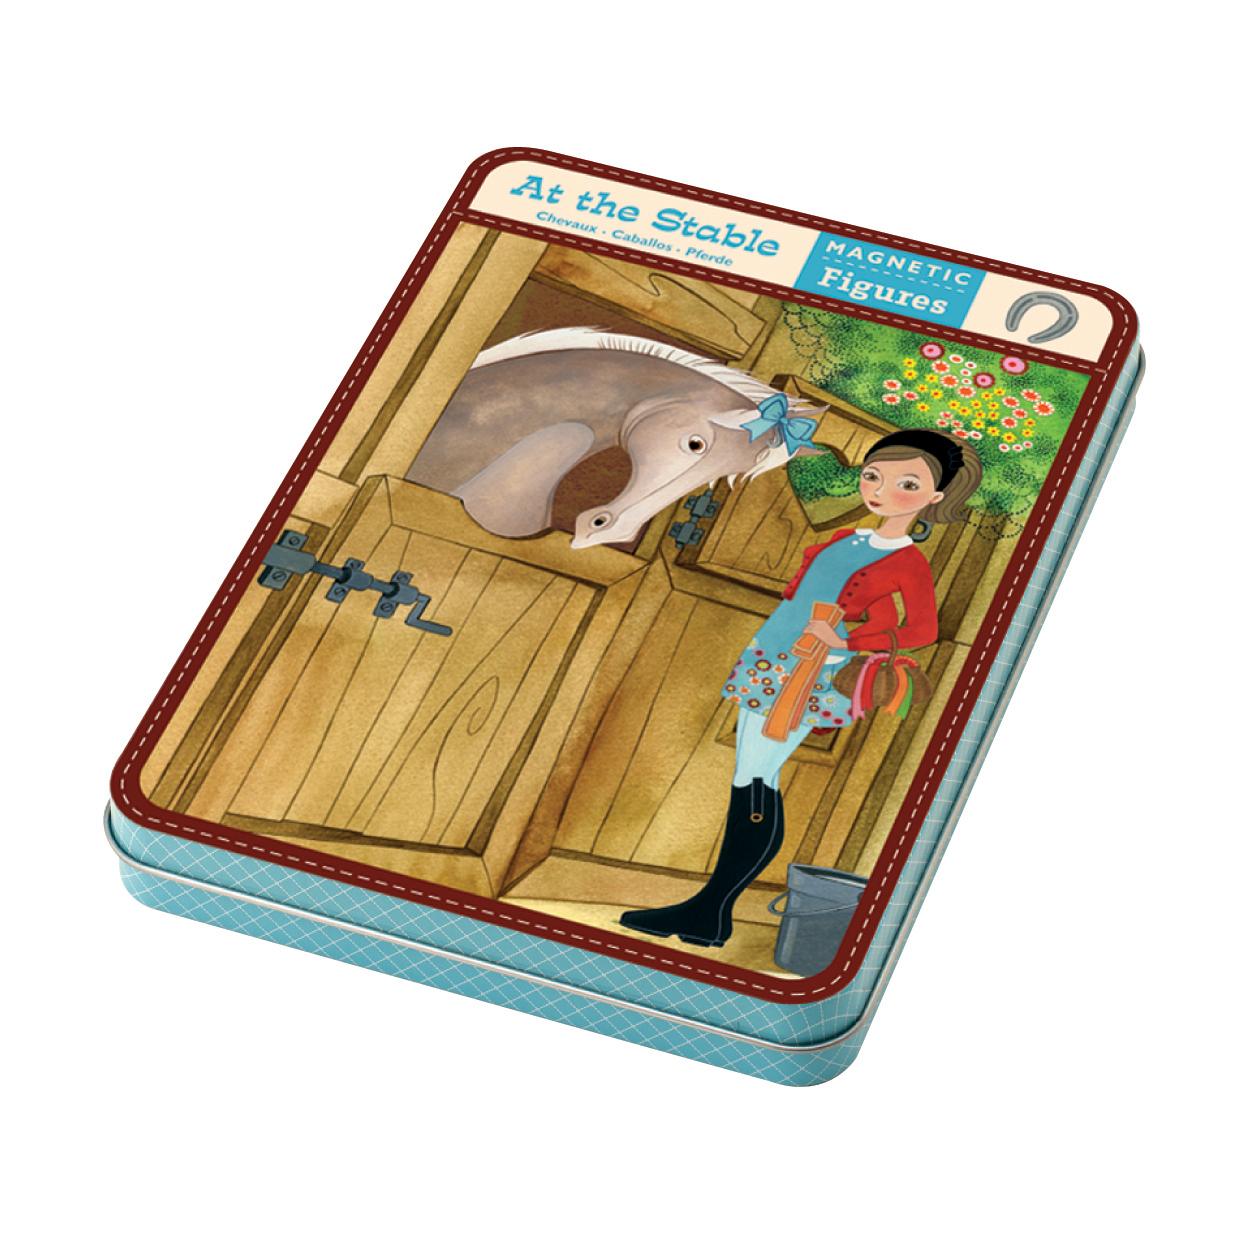 Mudpuppy -- Magnetic Design Play set --Dress up at Stable